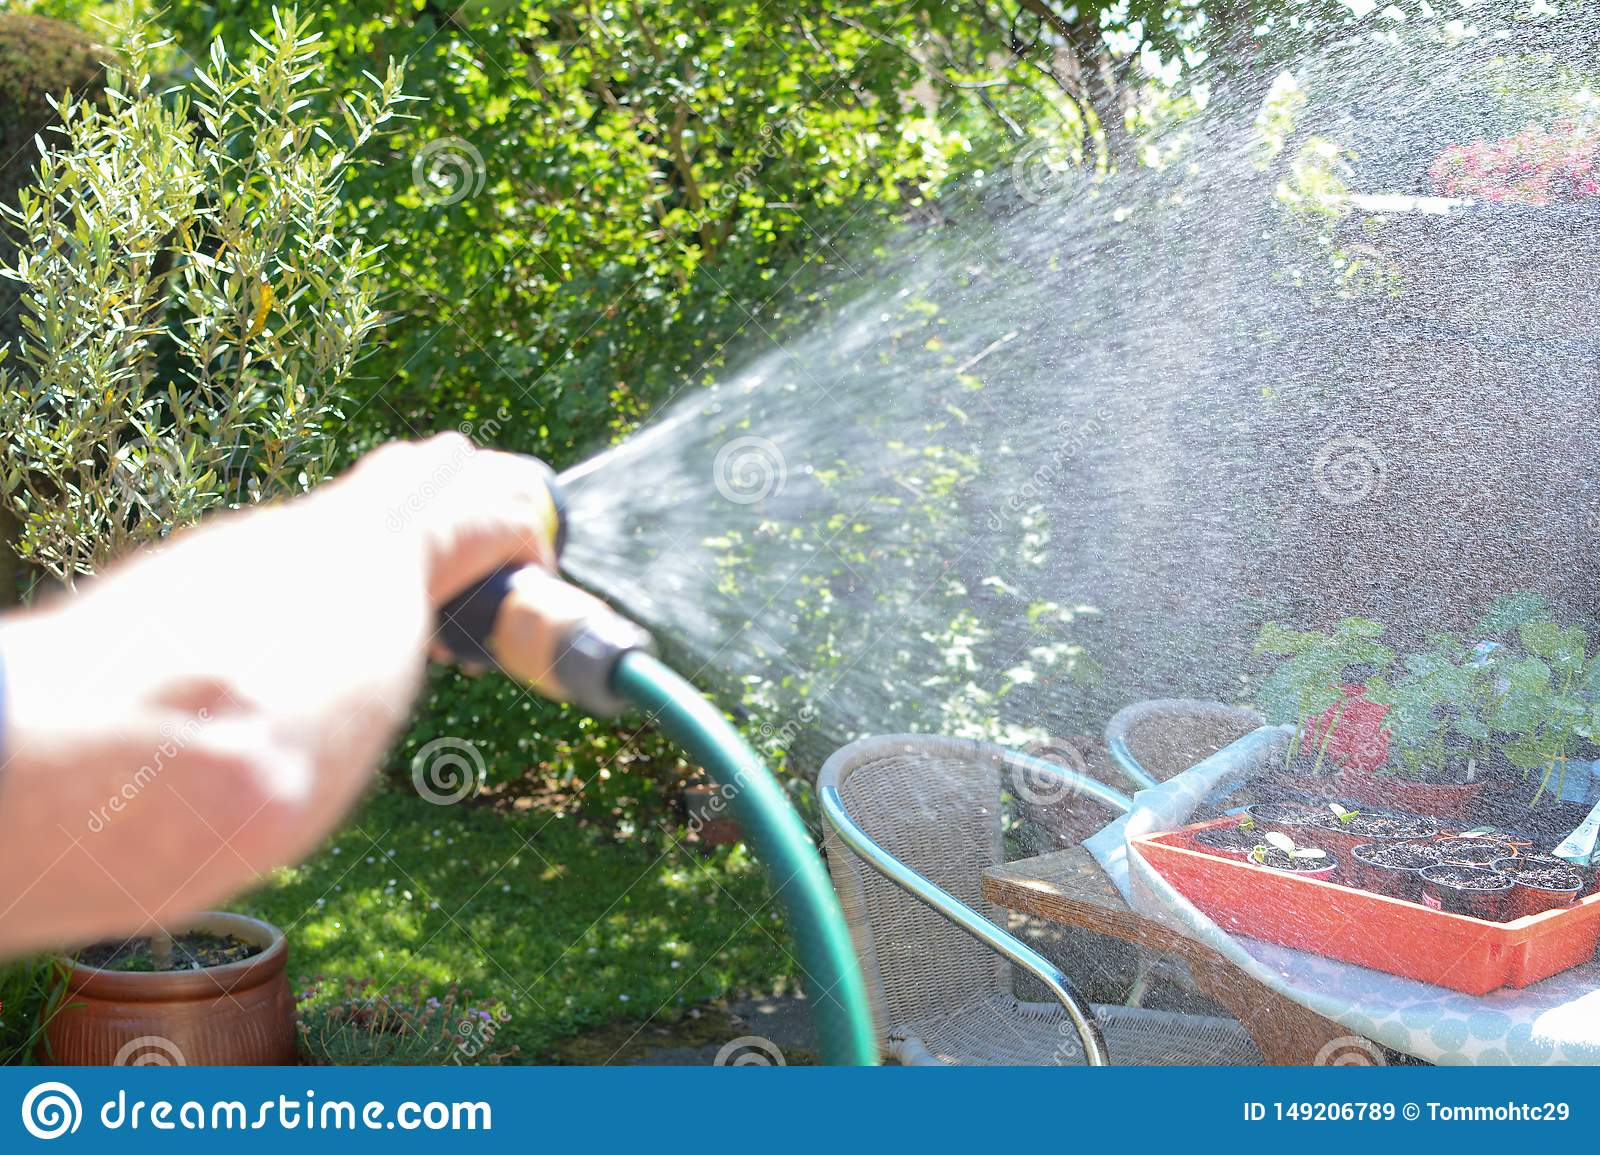 Man watering the garden with a sprinkler hose on a sunny day